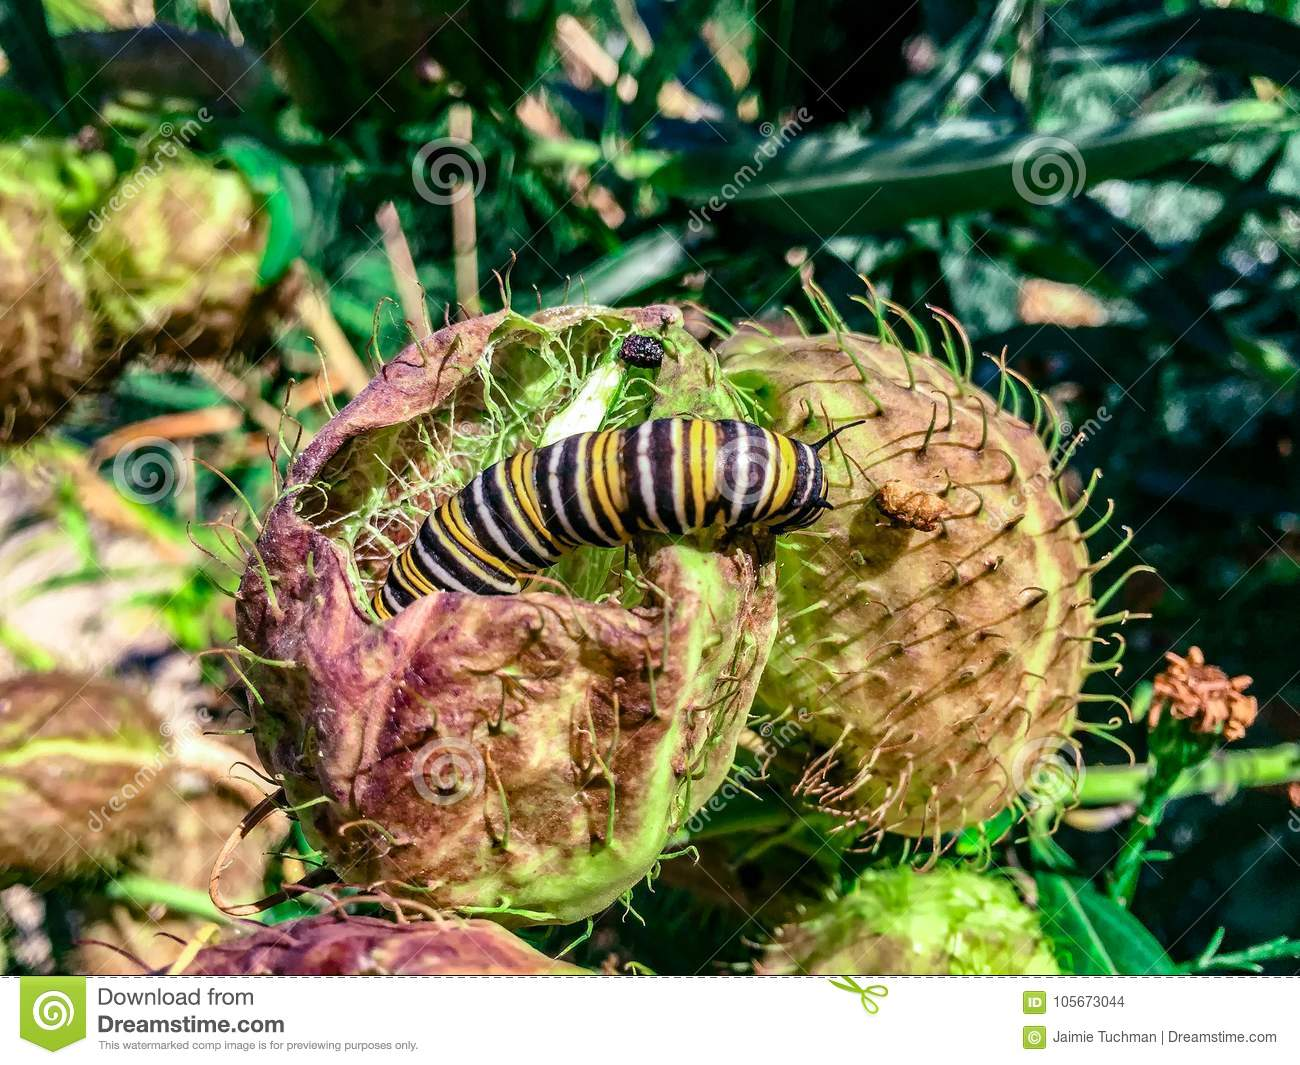 Caterpillar crawling on a thorny plant